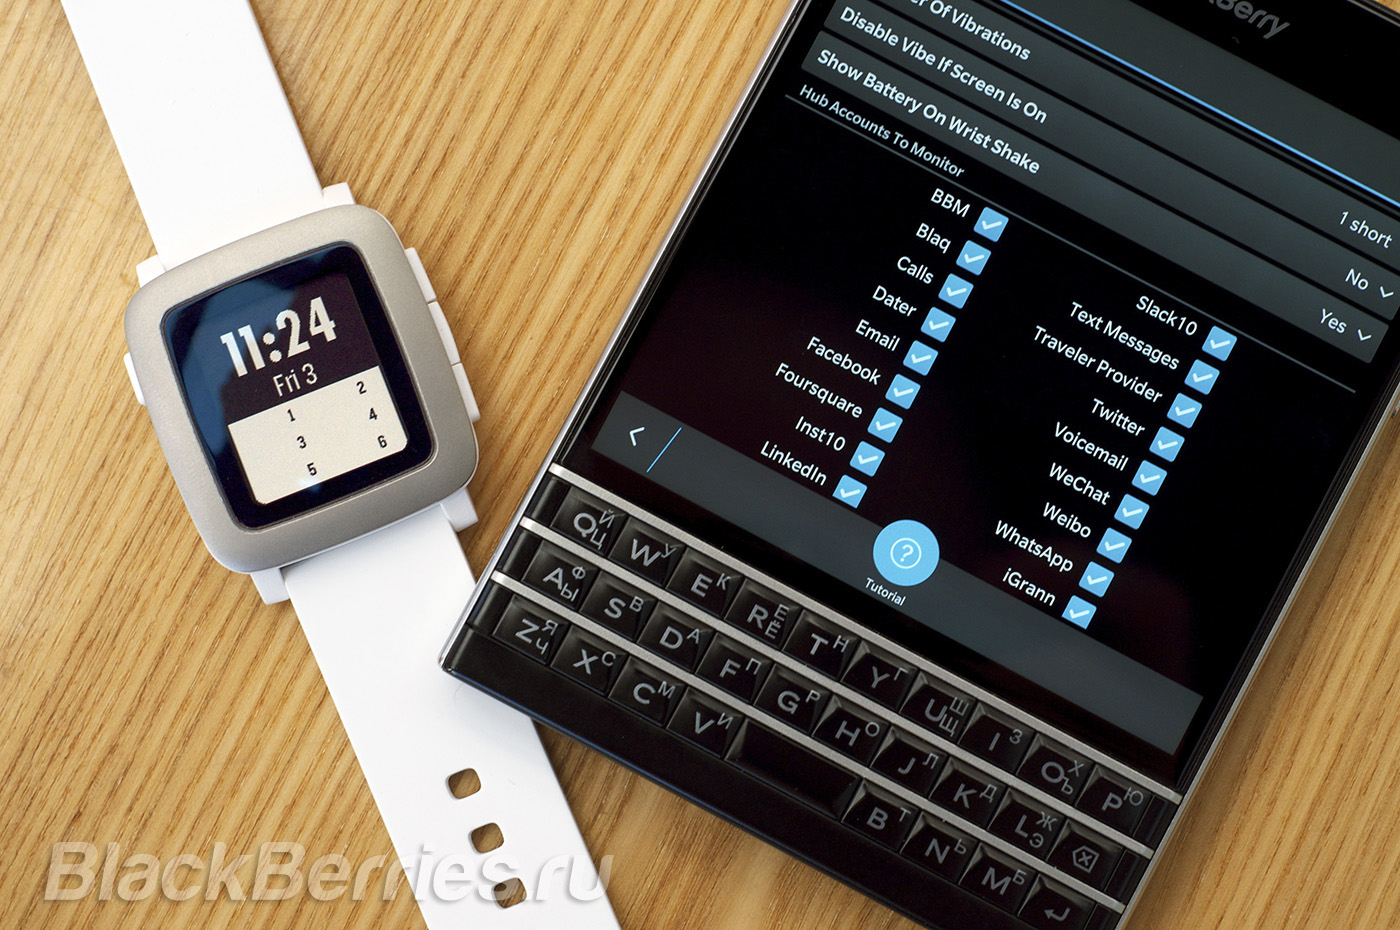 BlackBerry-Passport-Pebble-Time-05